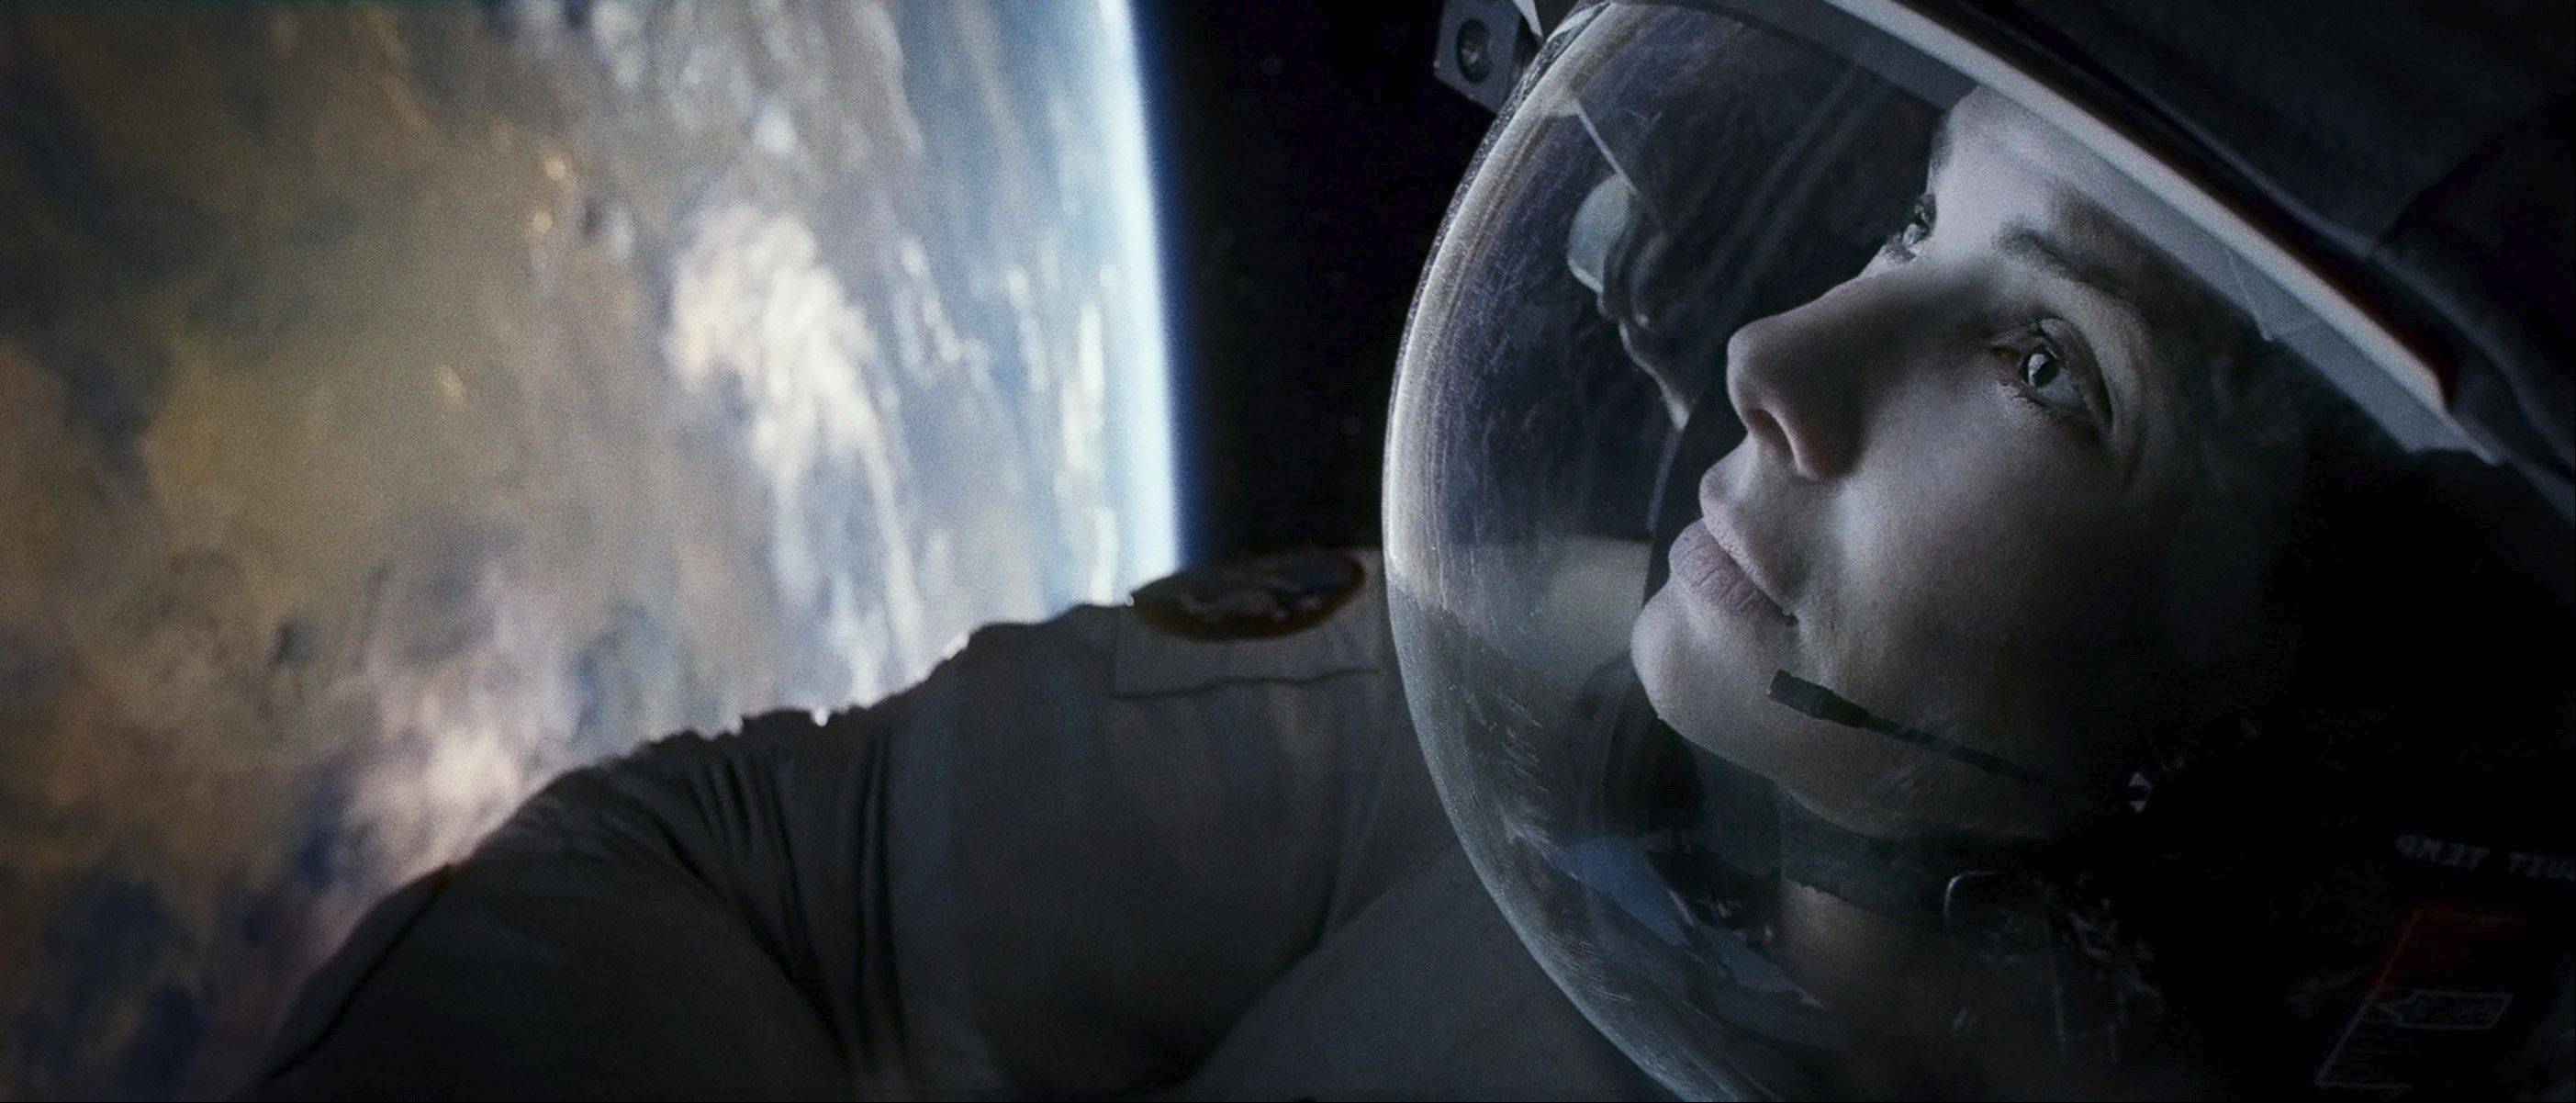 Cinematically engaging 'Gravity' an immersive survival thriller